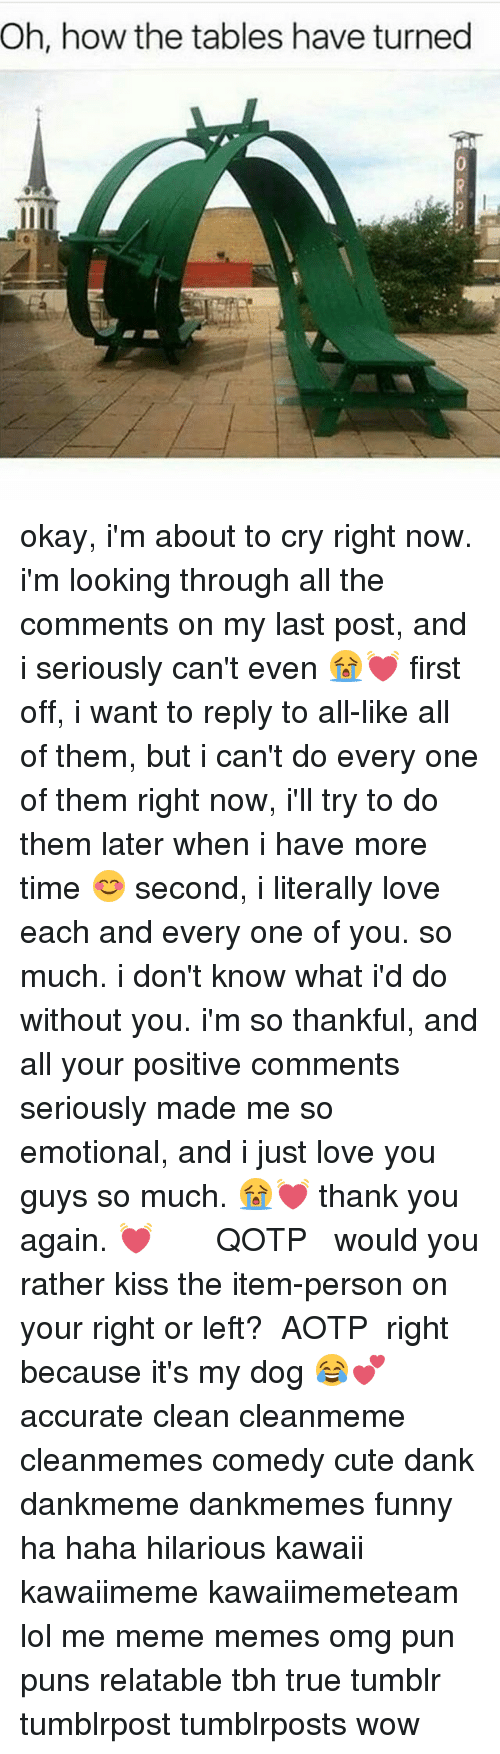 thank you again: Oh, how the tables have turned okay, i'm about to cry right now. i'm looking through all the comments on my last post, and i seriously can't even 😭💓 first off, i want to reply to all-like all of them, but i can't do every one of them right now, i'll try to do them later when i have more time 😊 second, i literally love each and every one of you. so much. i don't know what i'd do without you. i'm so thankful, and all your positive comments seriously made me so emotional, and i just love you guys so much. 😭💓 thank you again. 💓 ༻❤︎༺ ❧ QOTP ➳ would you rather kiss the item-person on your right or left? ❧ AOTP ➳ right because it's my dog 😂💕 ༻❤︎༺ accurate clean cleanmeme cleanmemes comedy cute dank dankmeme dankmemes funny ha haha hilarious kawaii kawaiimeme kawaiimemeteam lol me meme memes omg pun puns relatable tbh true tumblr tumblrpost tumblrposts wow